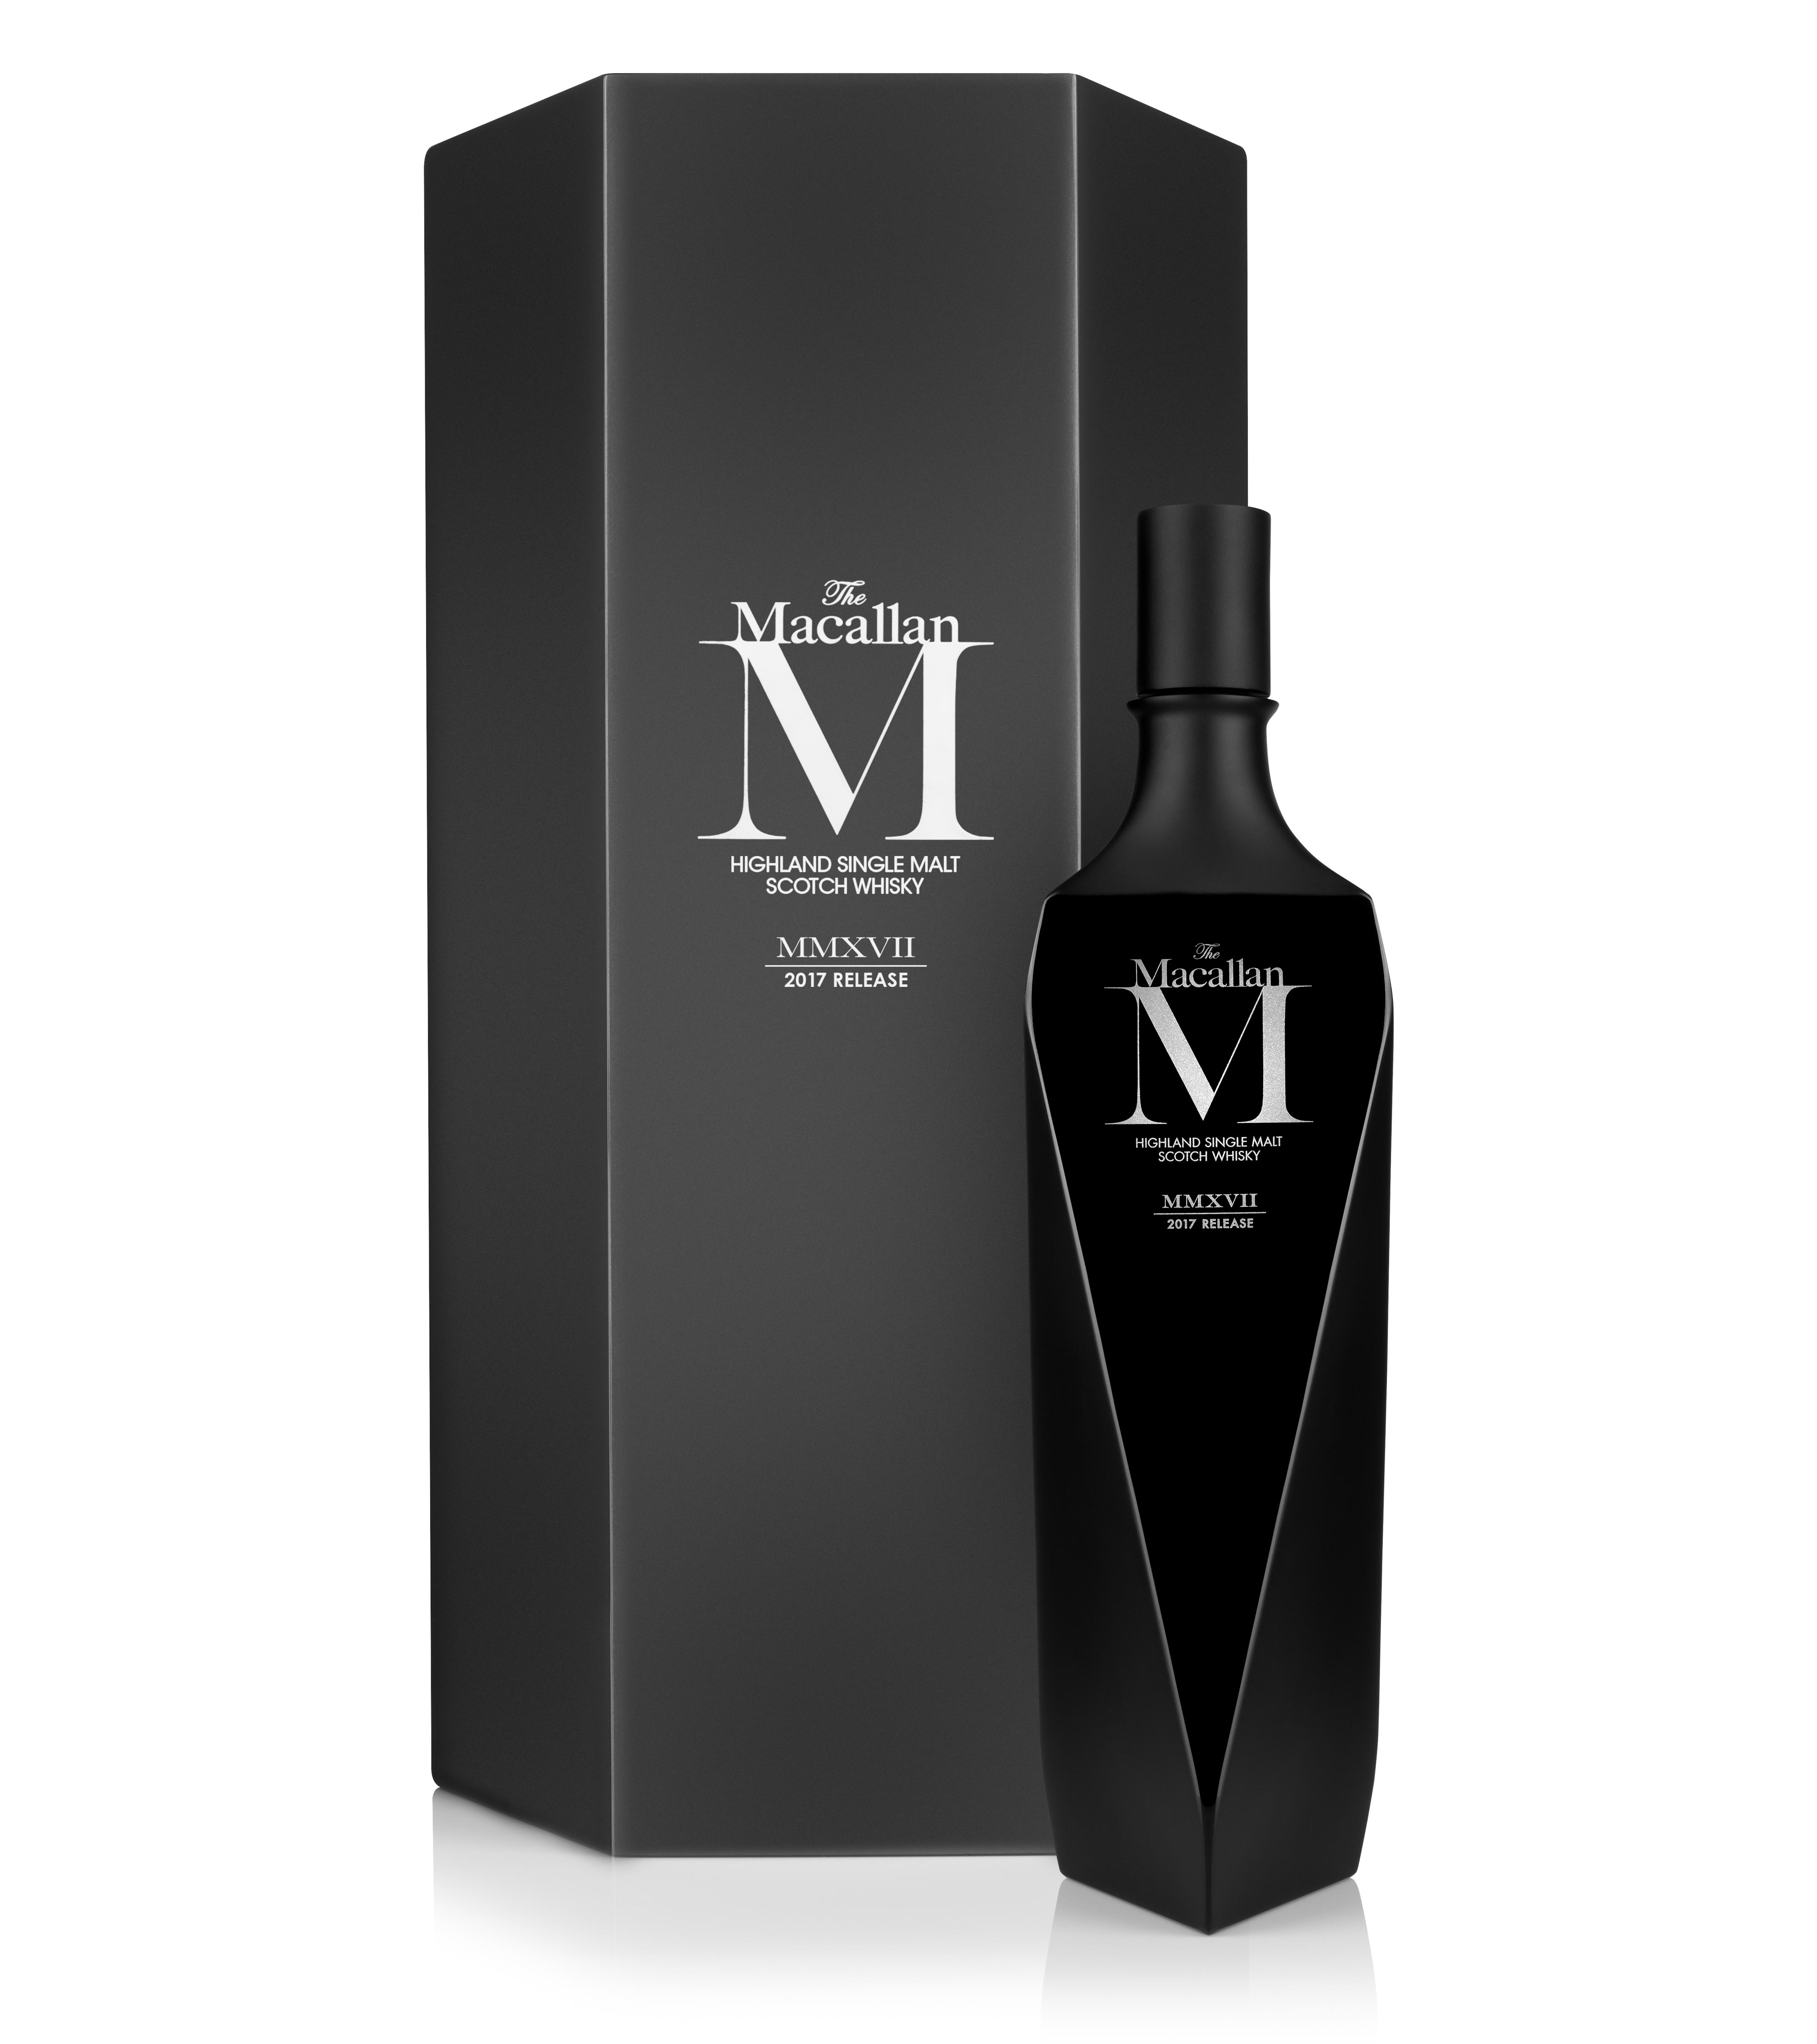 The Macallan M Black, bottle and packaging on white